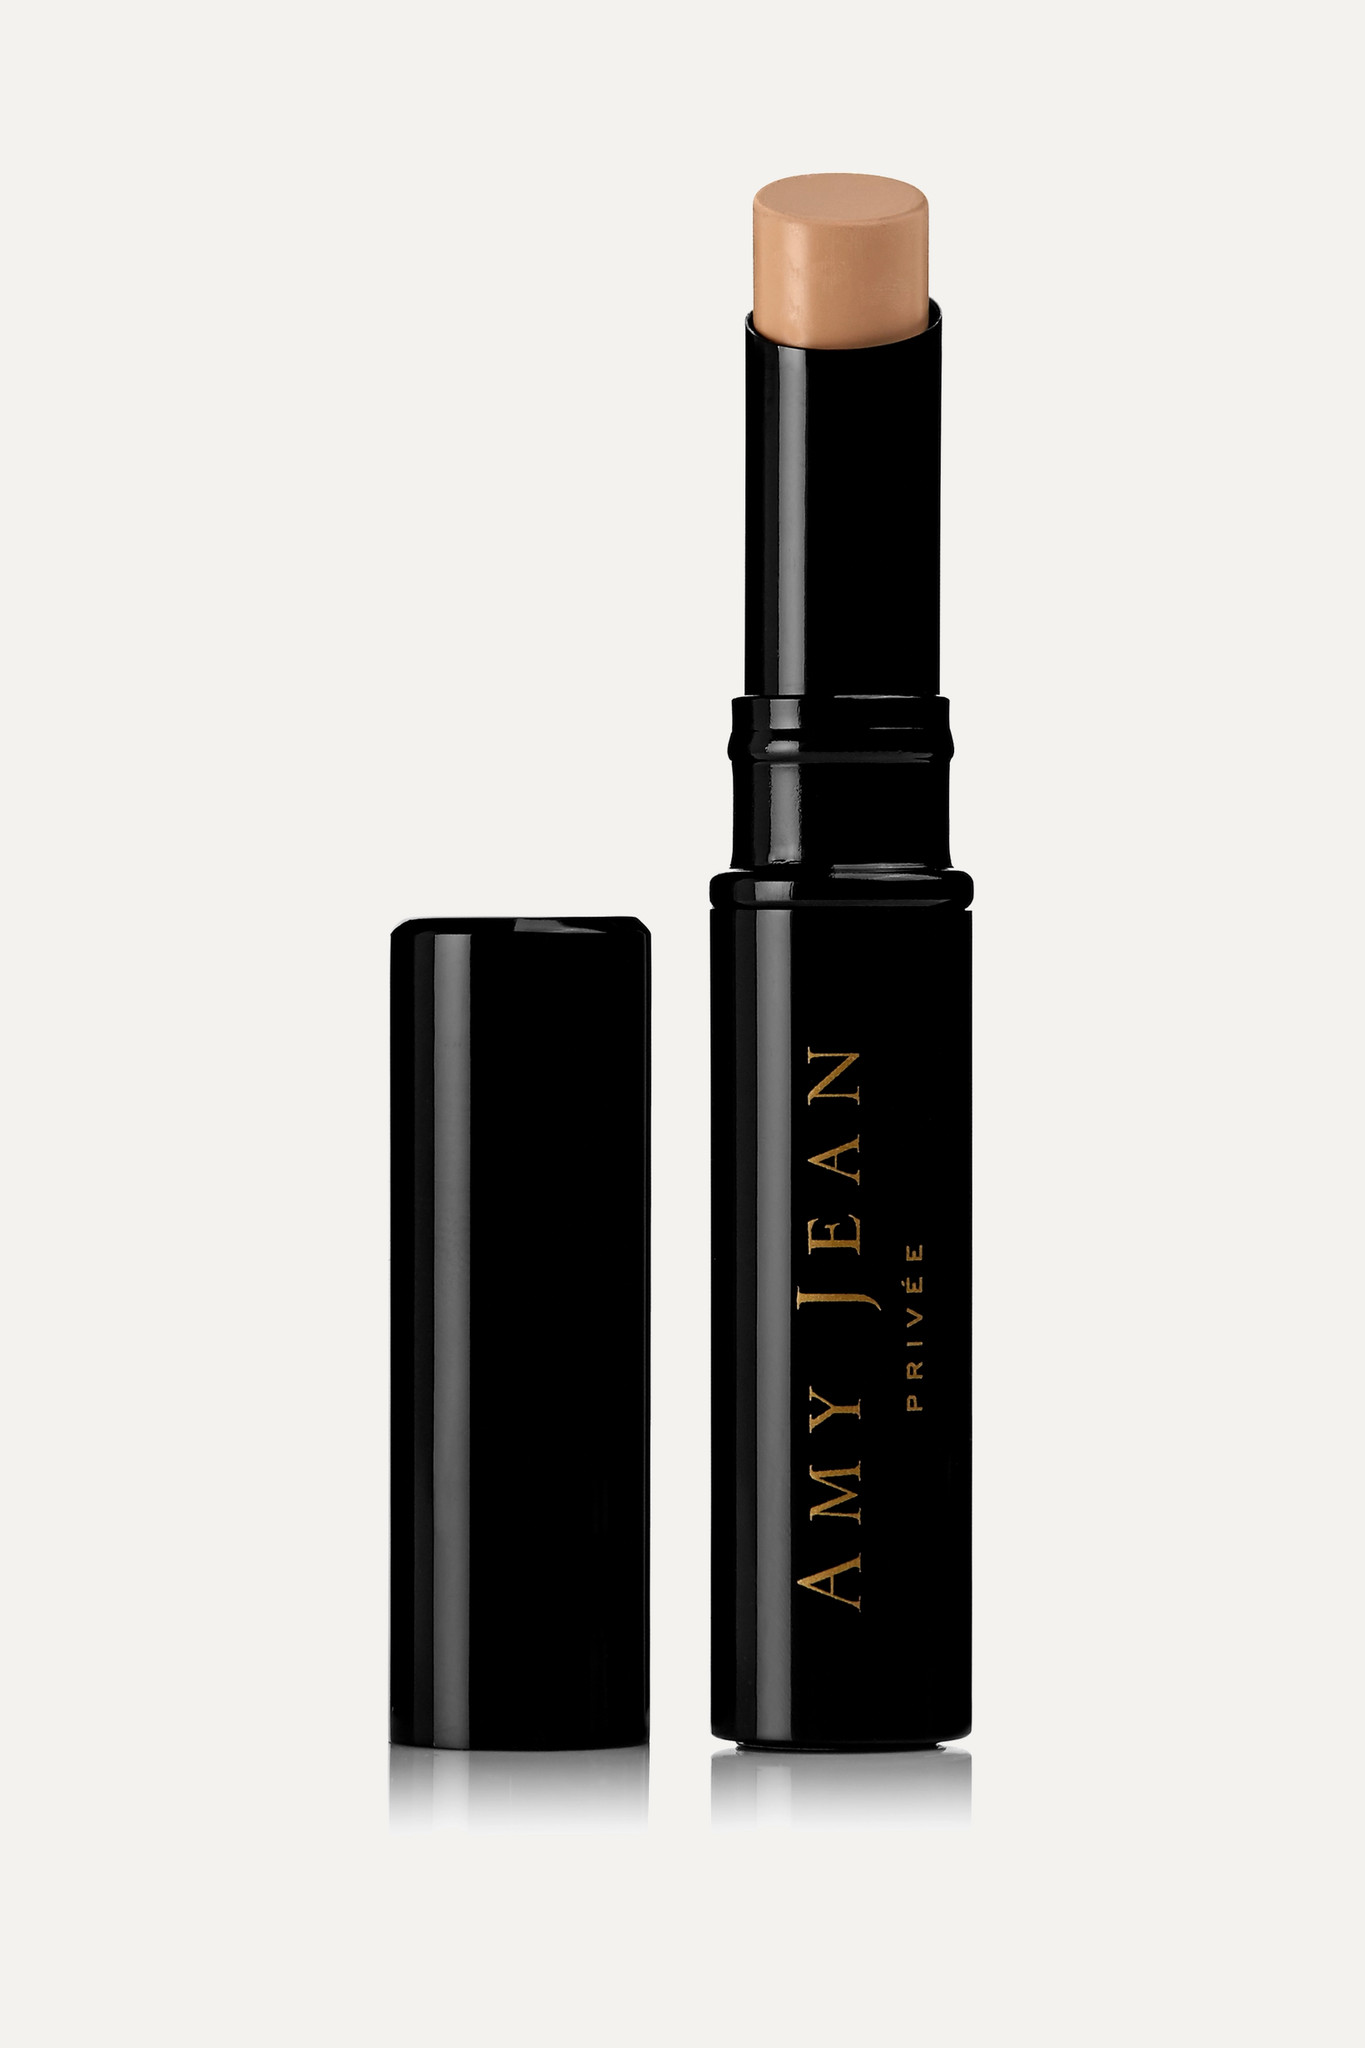 AMY JEAN BROWS - Concealer - Medium 04 - Neutrals - one size